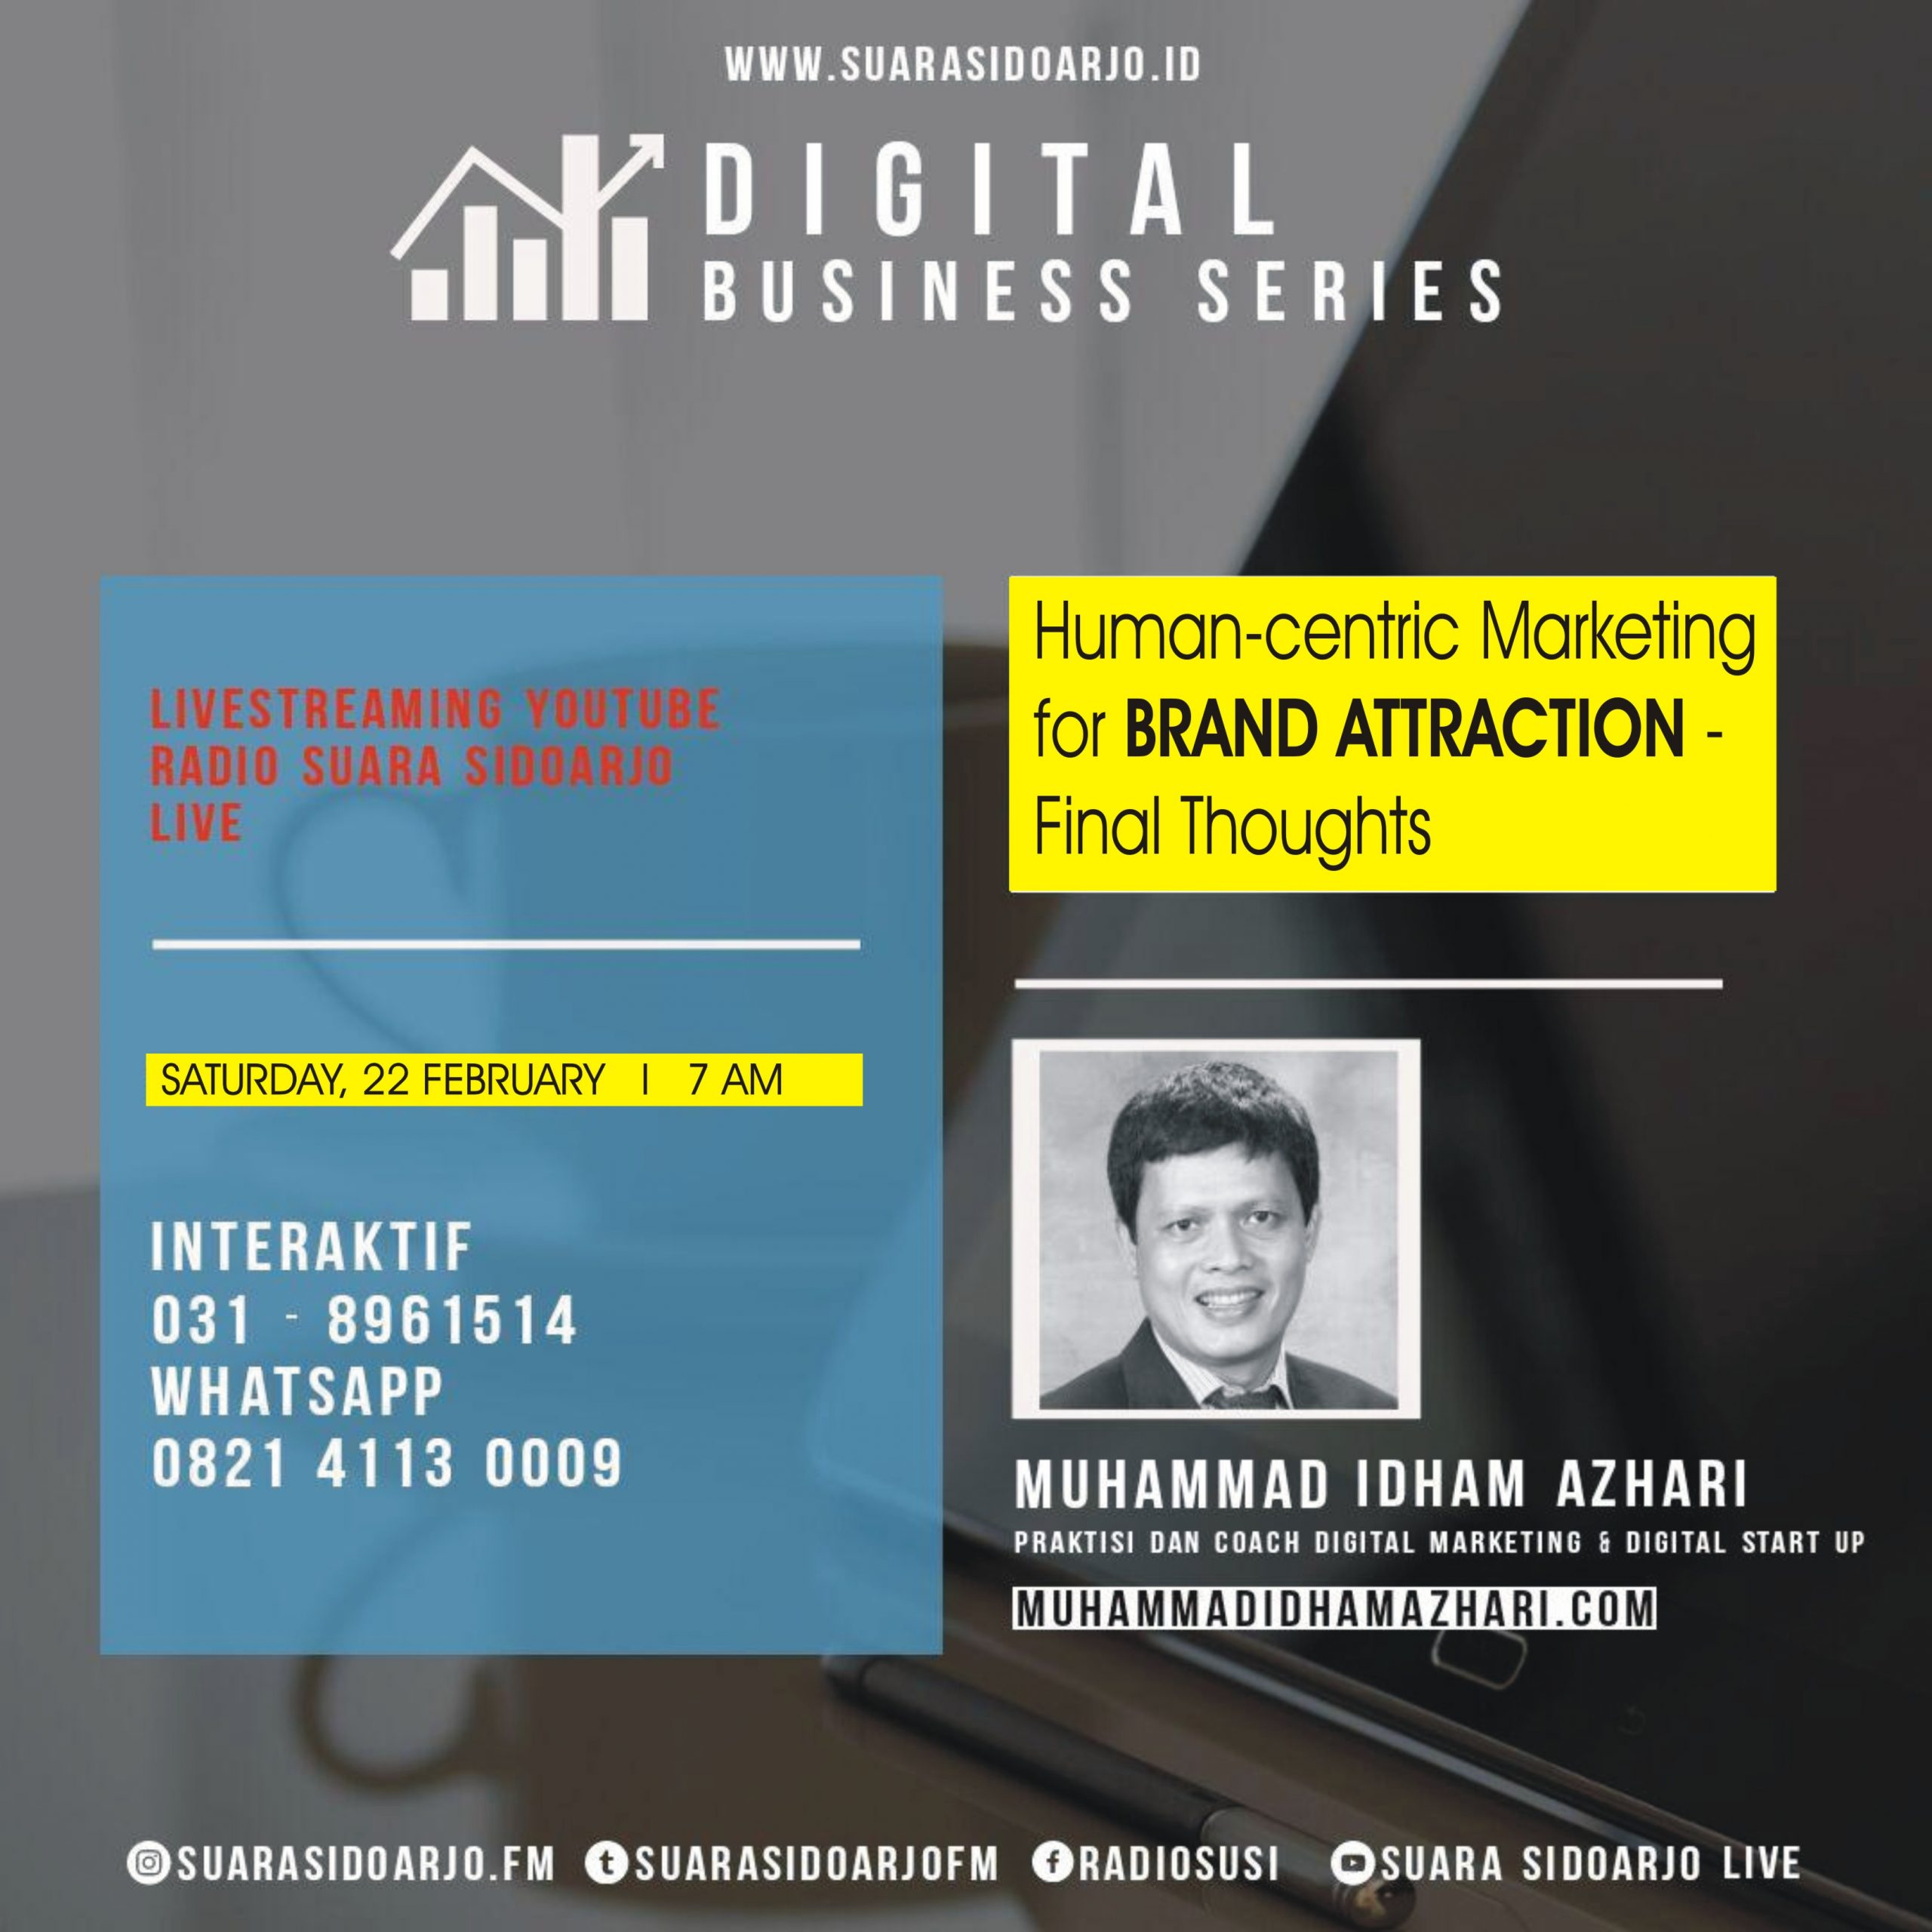 Human-centric Marketing for BRAND ATTRACTION - Final Thoughts Melalui Suara Sidoarjo